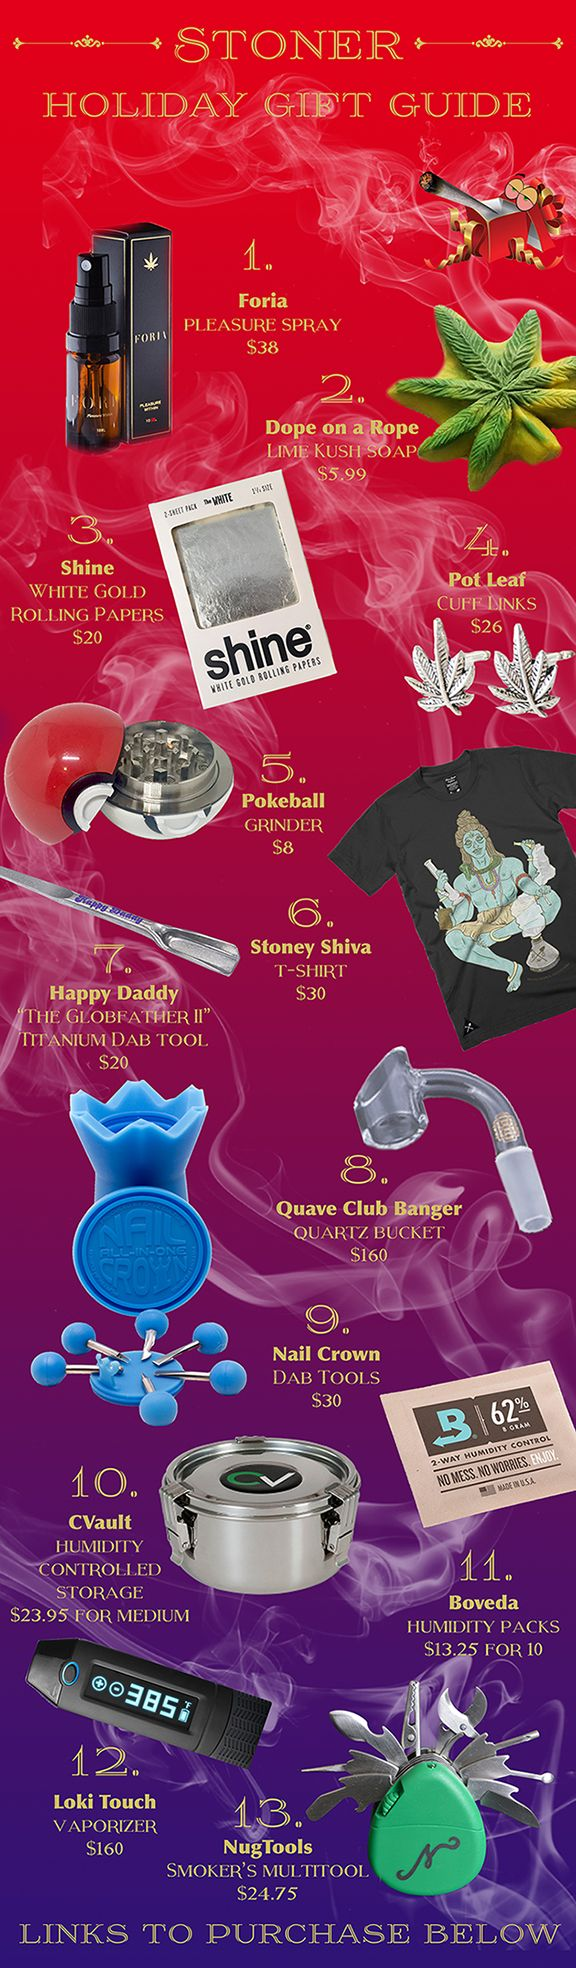 Valentines DAY Gift ; Looking for the Perfect 420-Friendly Gift?; Foria Pleasure Spray NugTools: The Smoker's Multitool  Homegrown Outfitters: Shiva T-Shirt Loki Touch Vaporizer Cvault: Humidity Controlled Storage Container Boveda Humidity Packs Nail Crown Dab Tools Quave Glass: Club Banger Quartz Nail Happy Daddy: Titanium Globfather II Dab Tool Pokeball Grind... Marijuana / Cannabis / Style